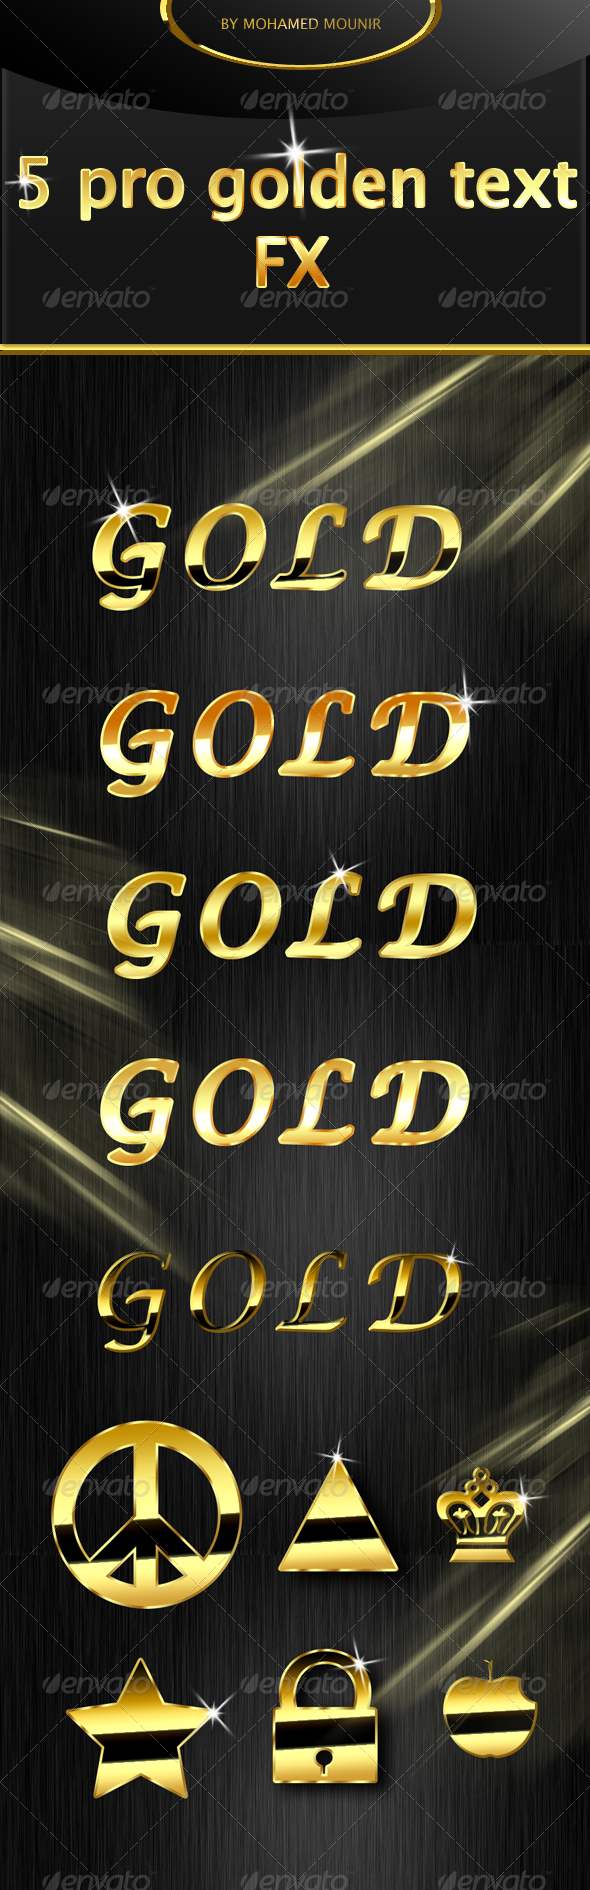 Add on photoshop actions text effects text style golden gold effect